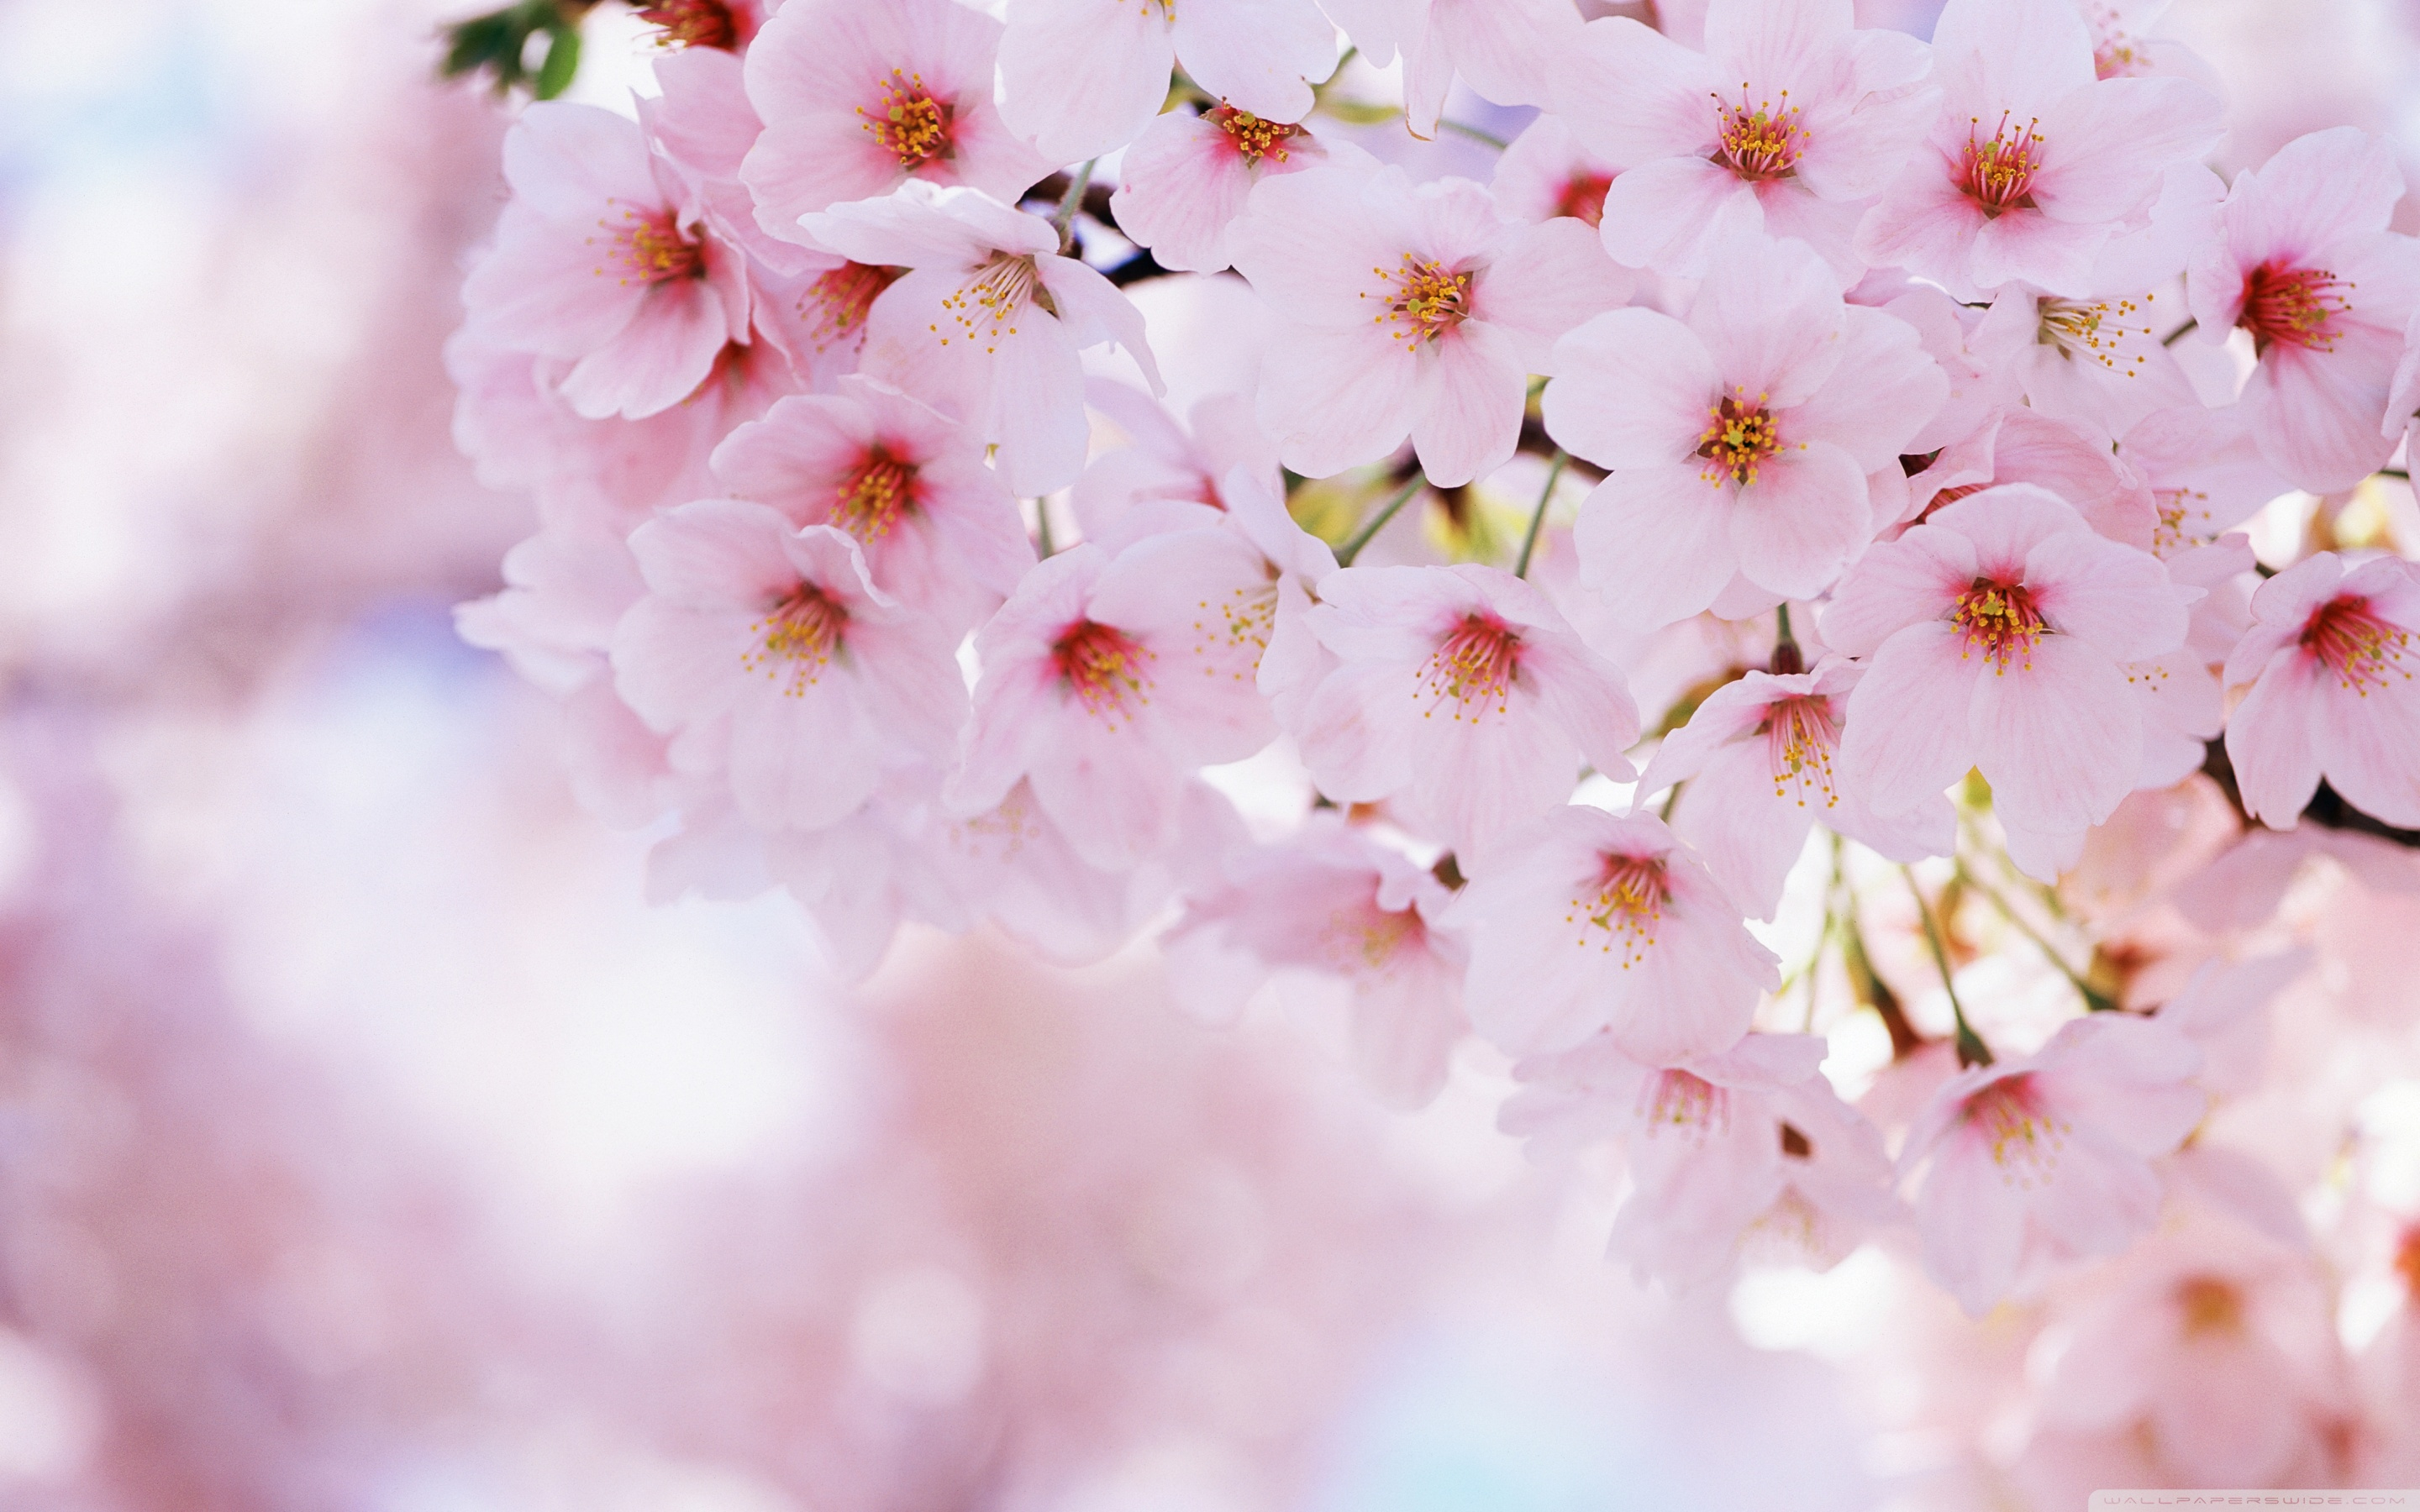 Image for Awesome Cherry Blossom (Sakura) Wallpaper HD 7